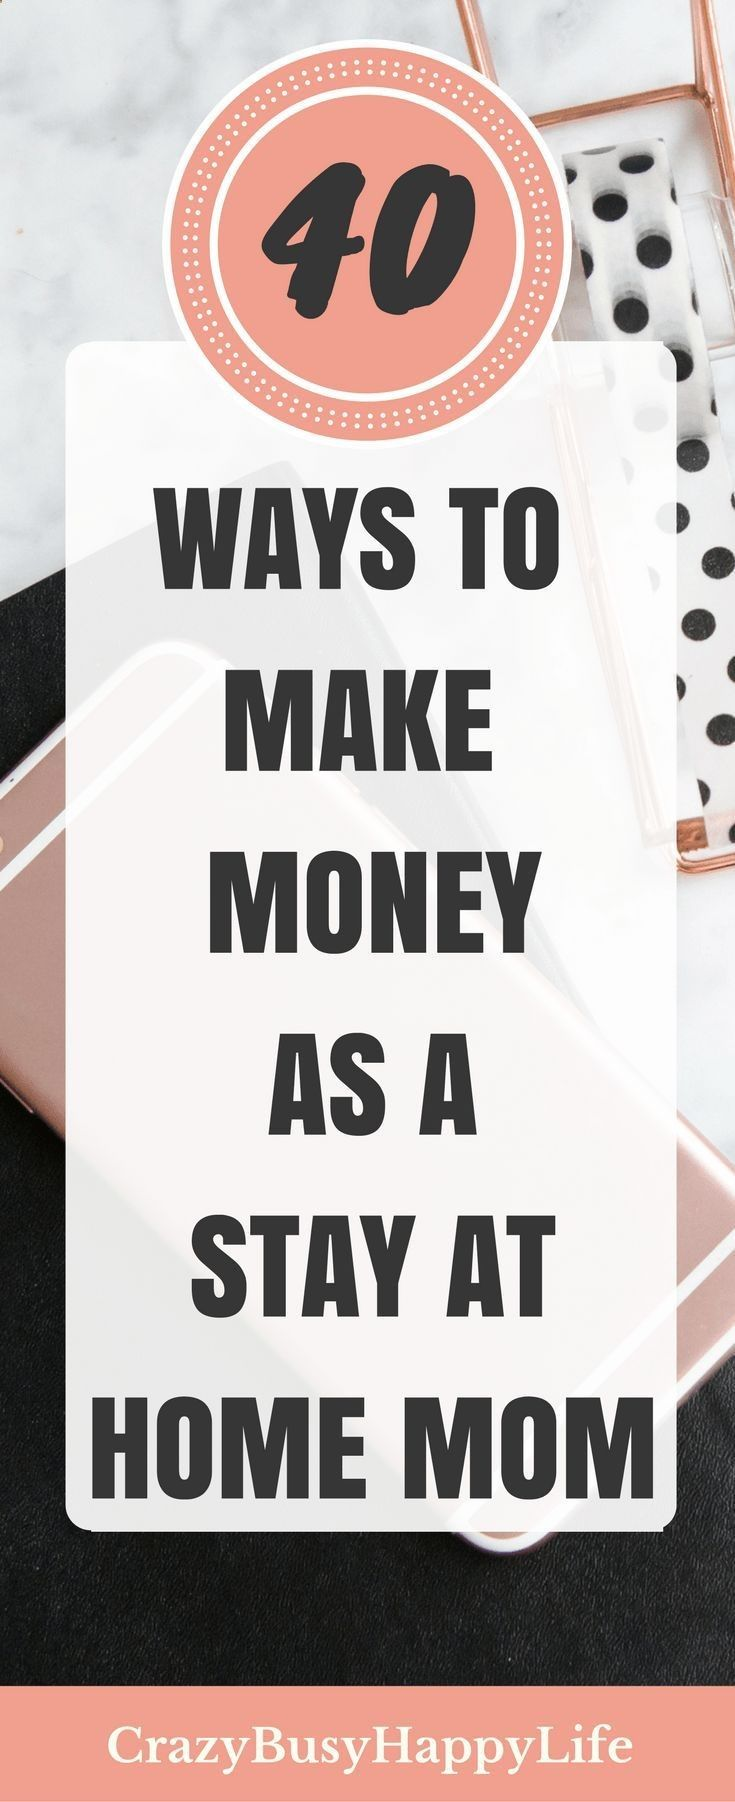 Copy Paste Earn Money - Here are 40 great ideas for earning money ...